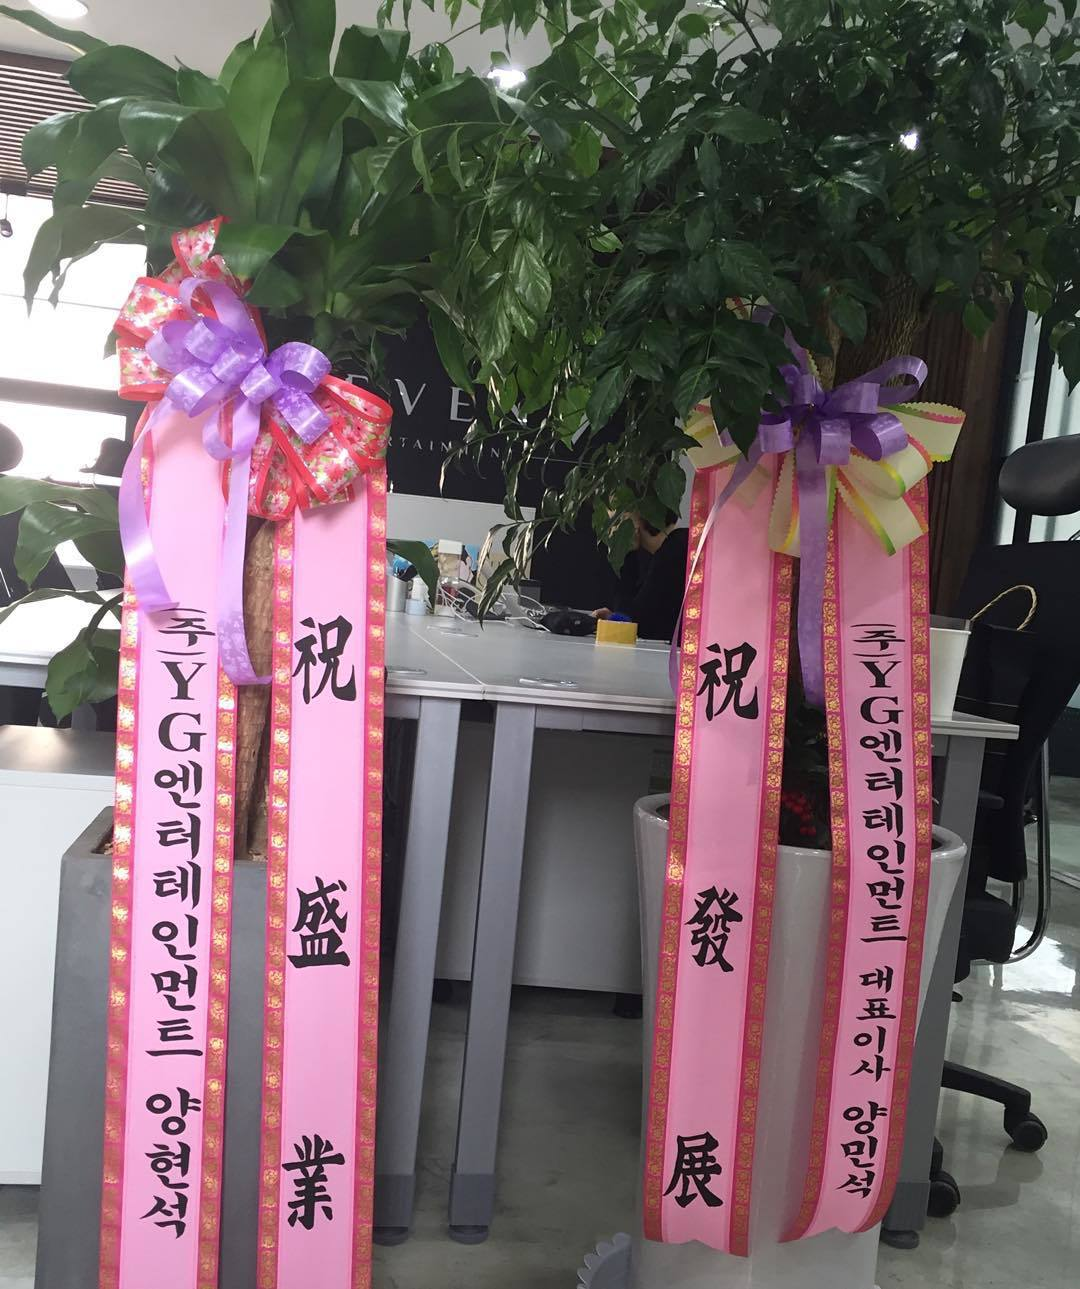 Wreaths from YG Entertainment's Yang Hyun Suk and CEO Yang Min Suk Photo: Instagram / @se7enofficial